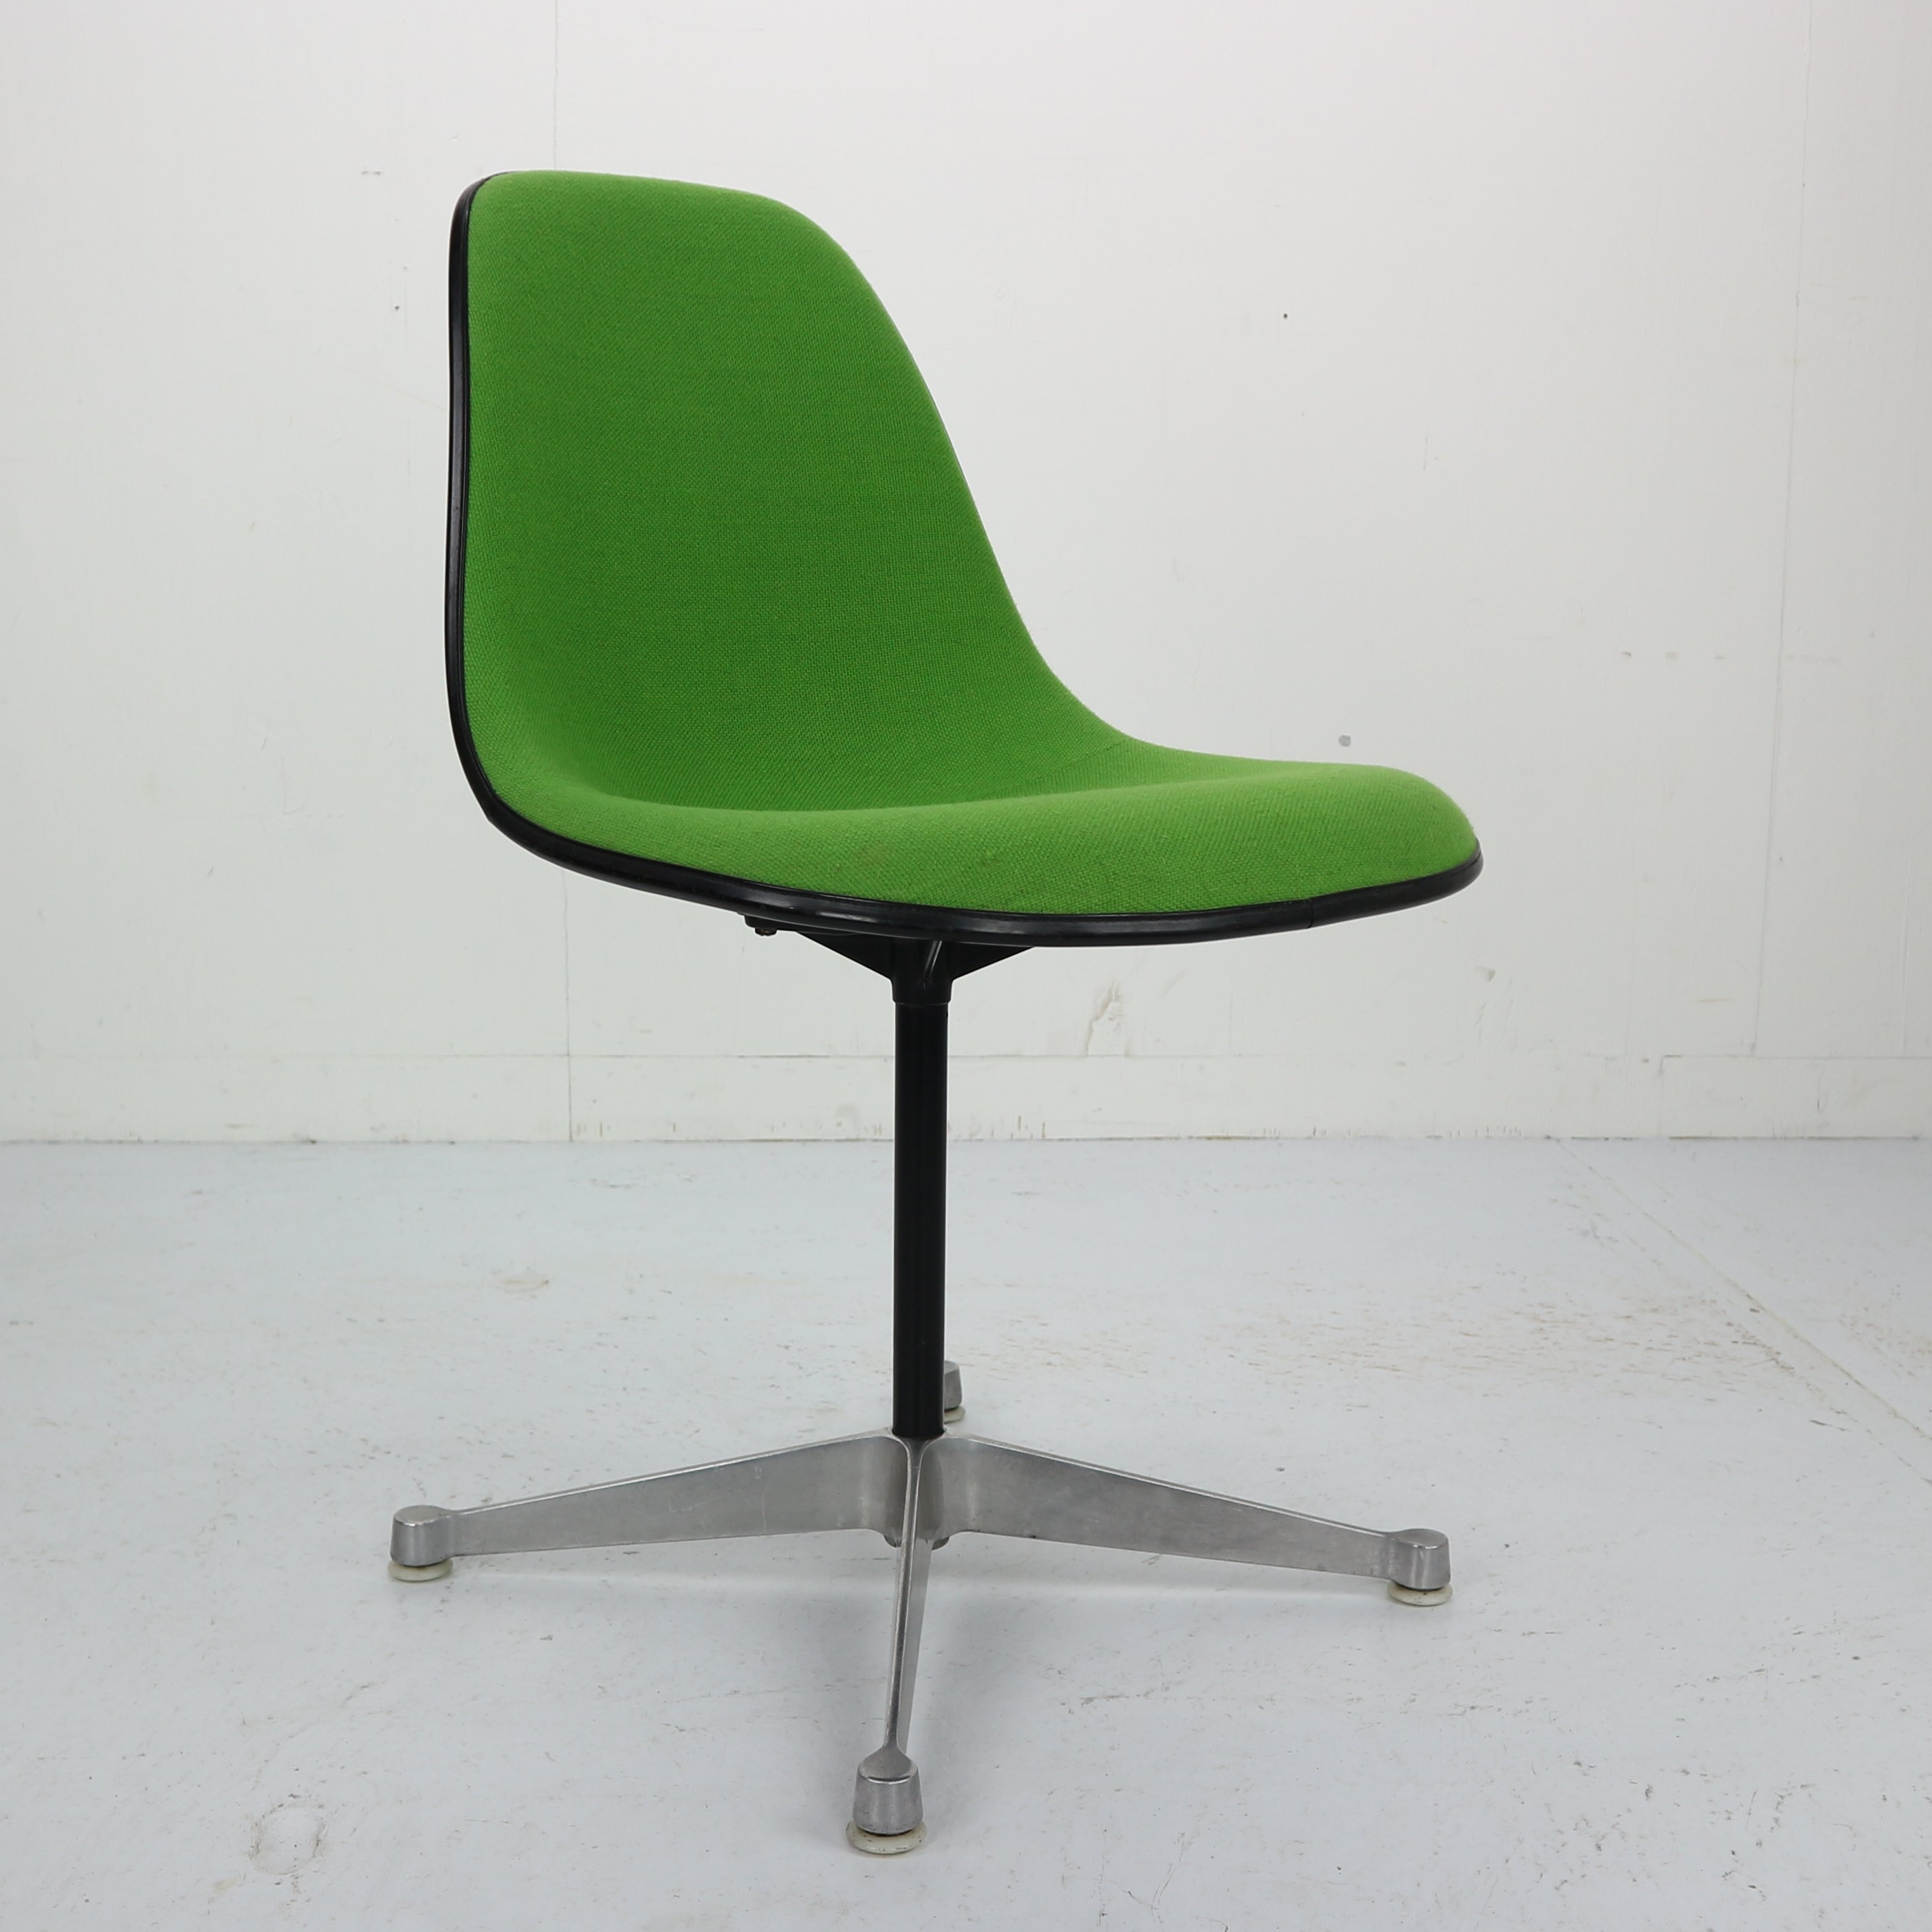 Upholstered Swivel Chairs Vintage Upholstered Contractor Base Eames Swivel Chair For Herman Miller